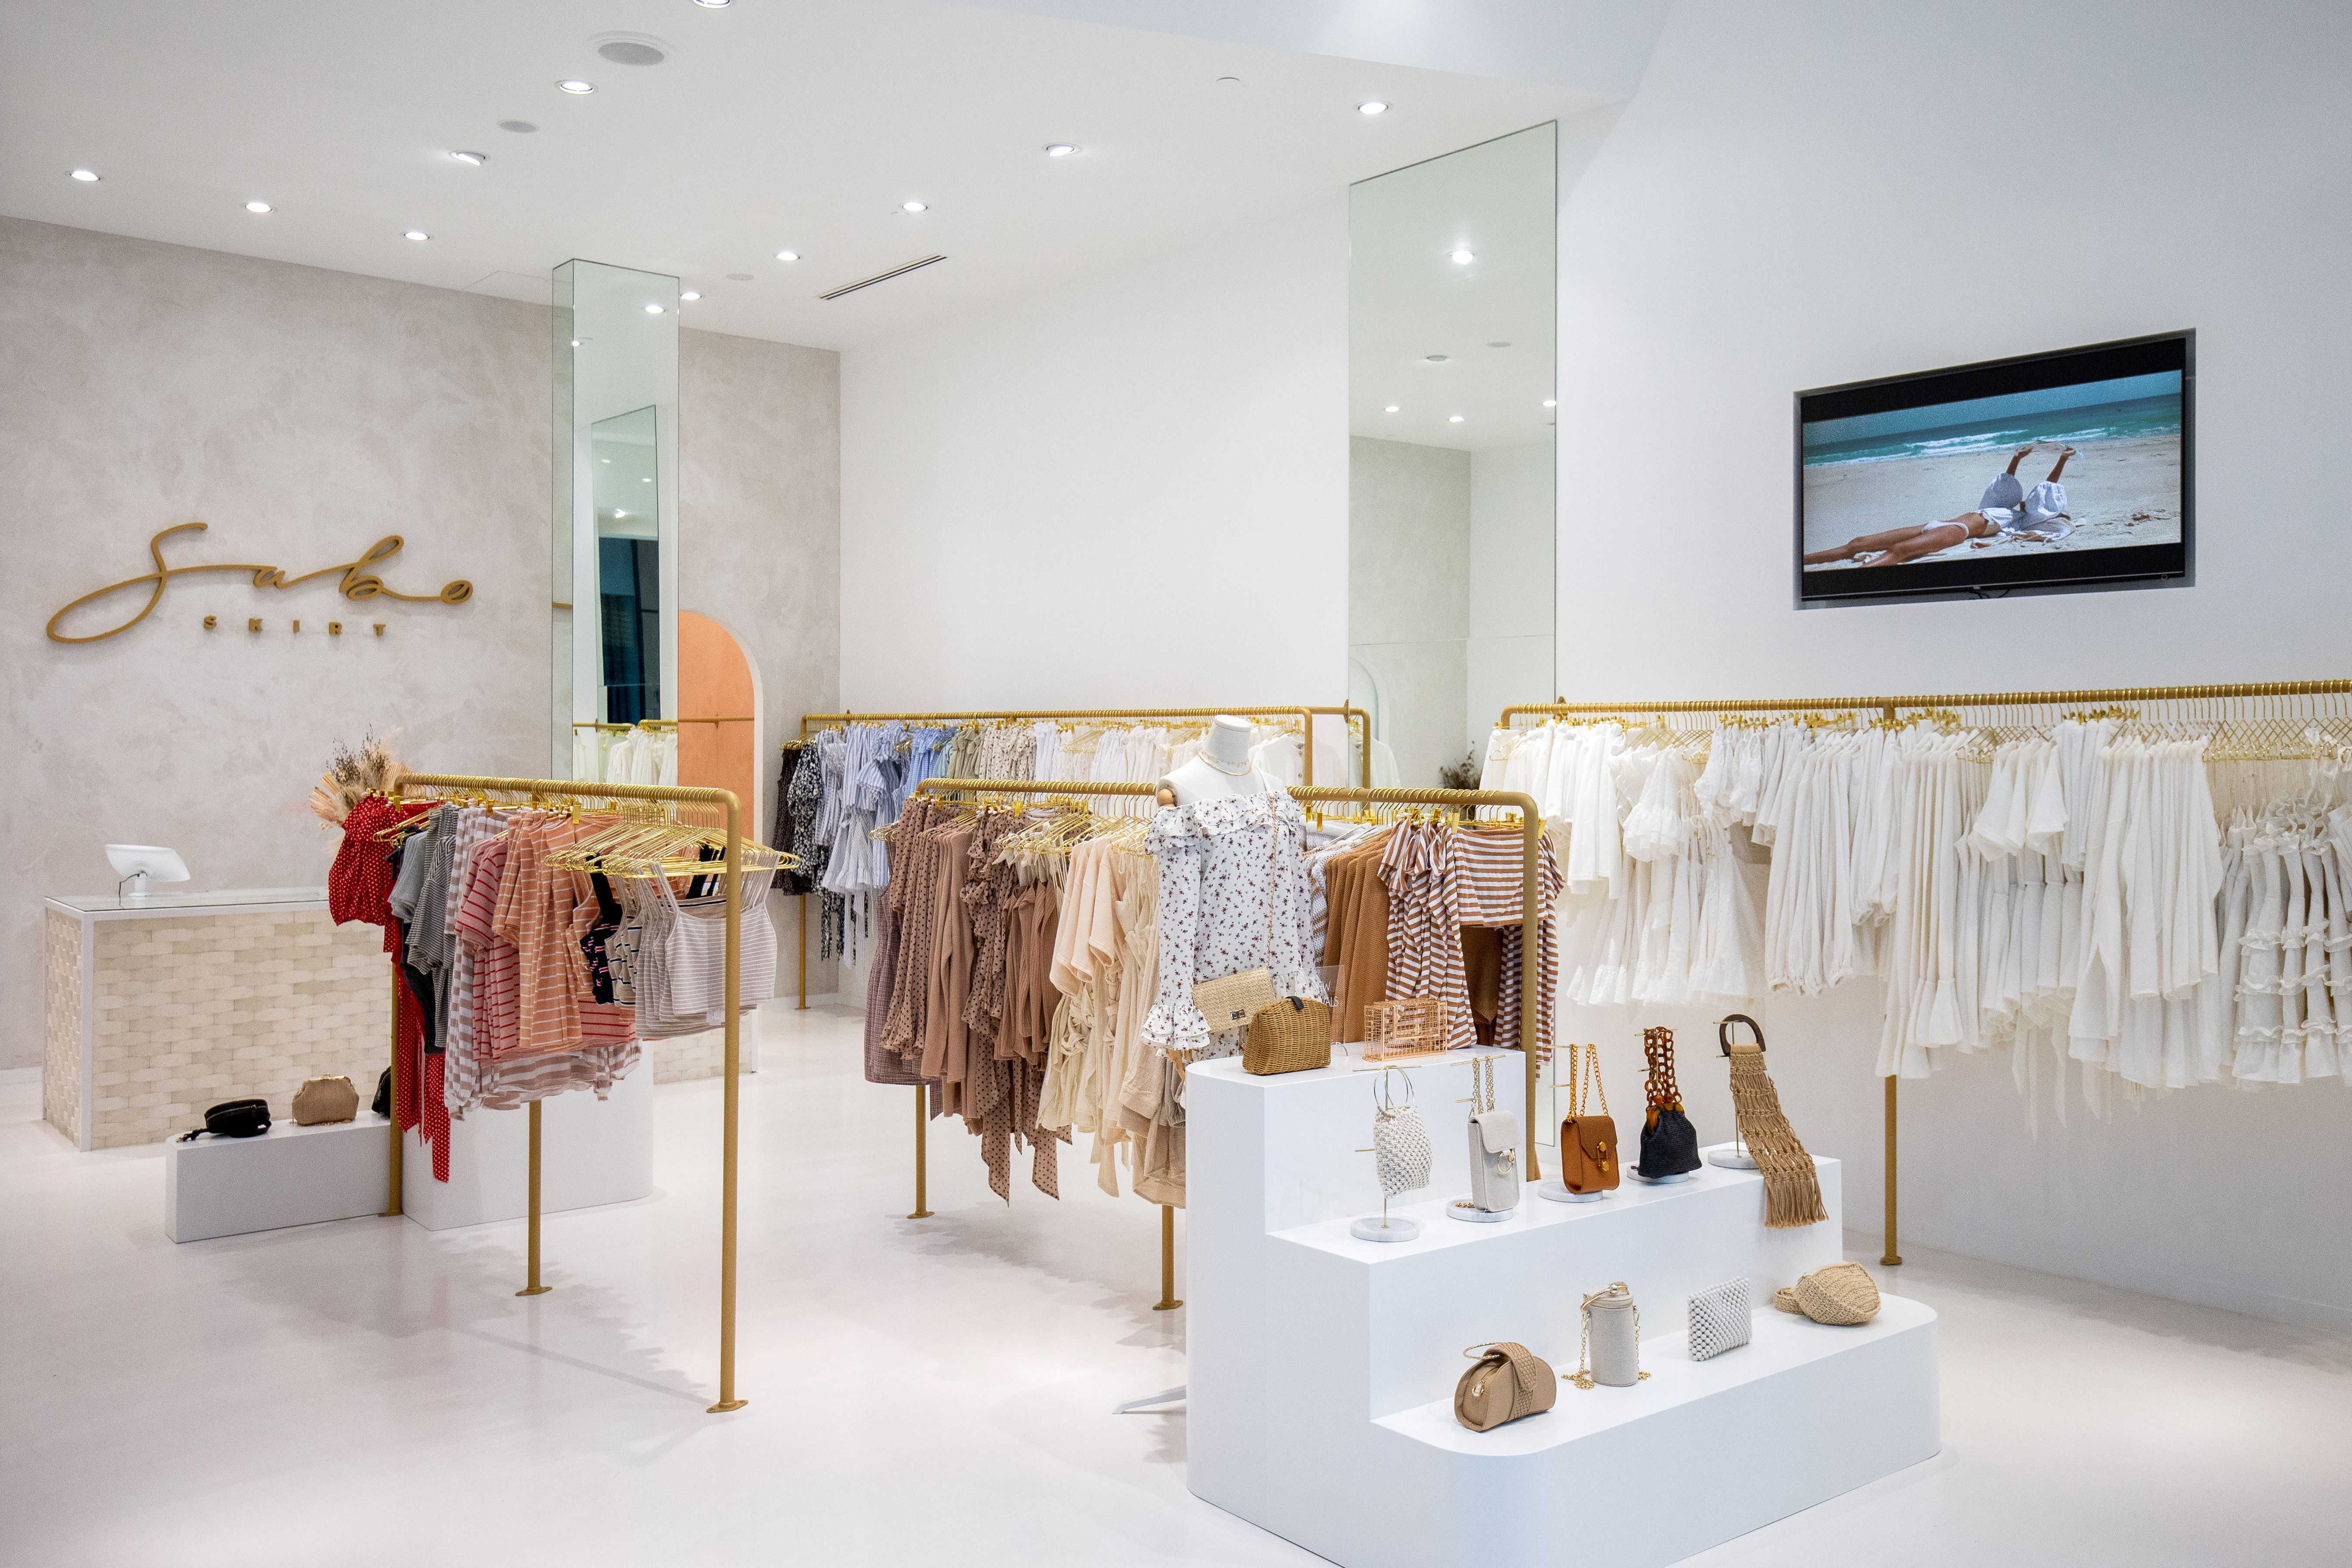 Archie Bolden Designed Sabo Skirt S Second Retail Store At Pacific